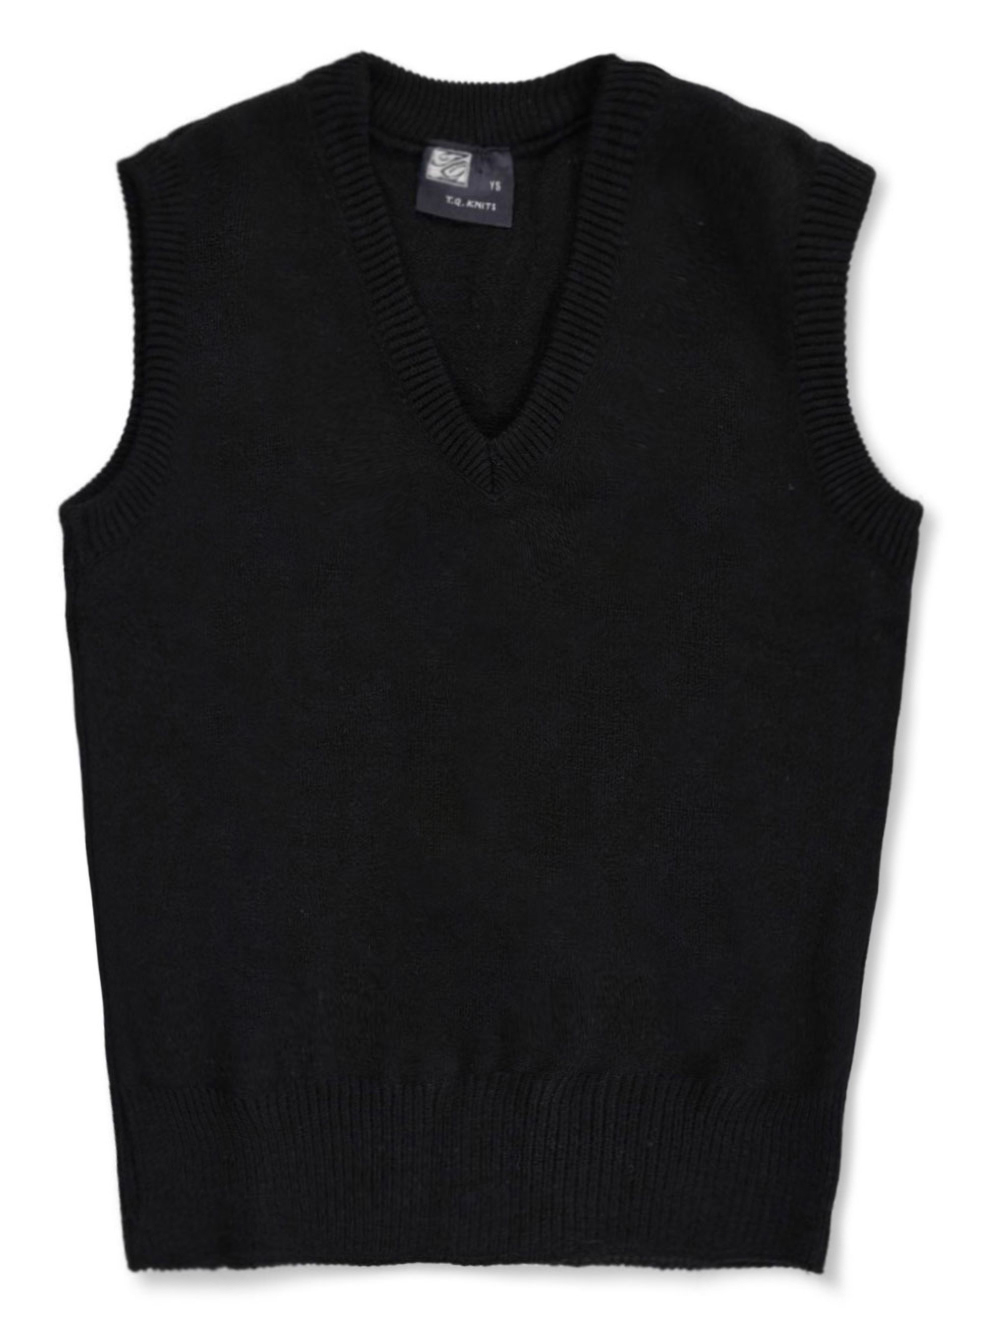 Image of T.Q. Knits Unisex Sweater Vest Adult Sizes S  XXL